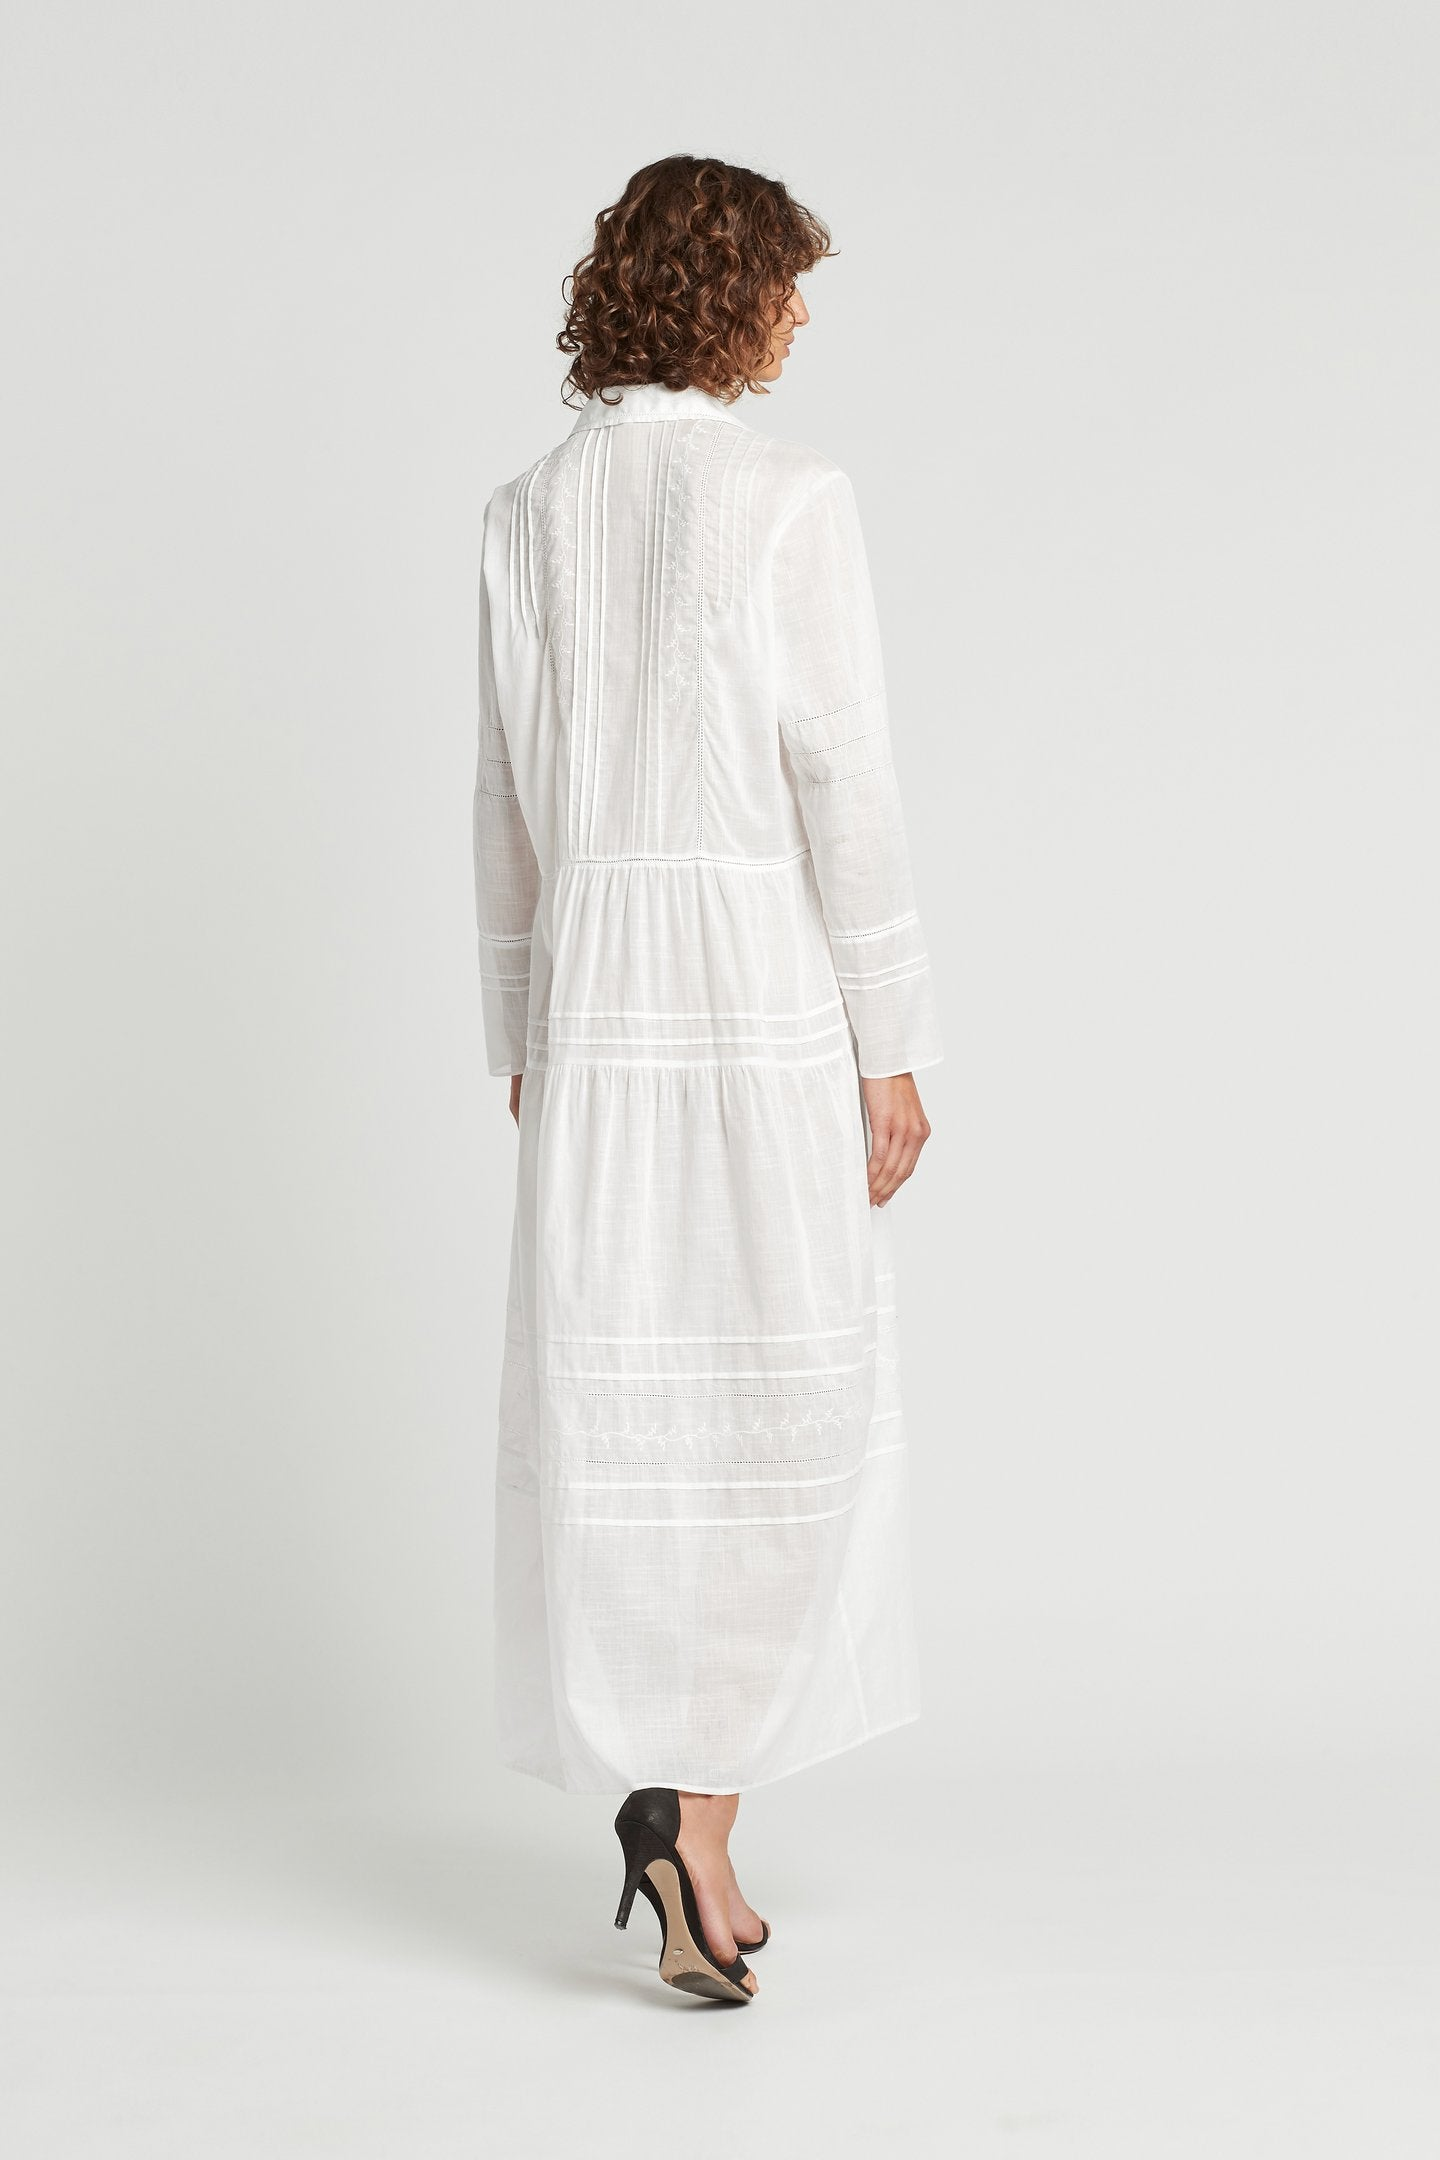 SIR The Label Harper Maxi Shirt Dress